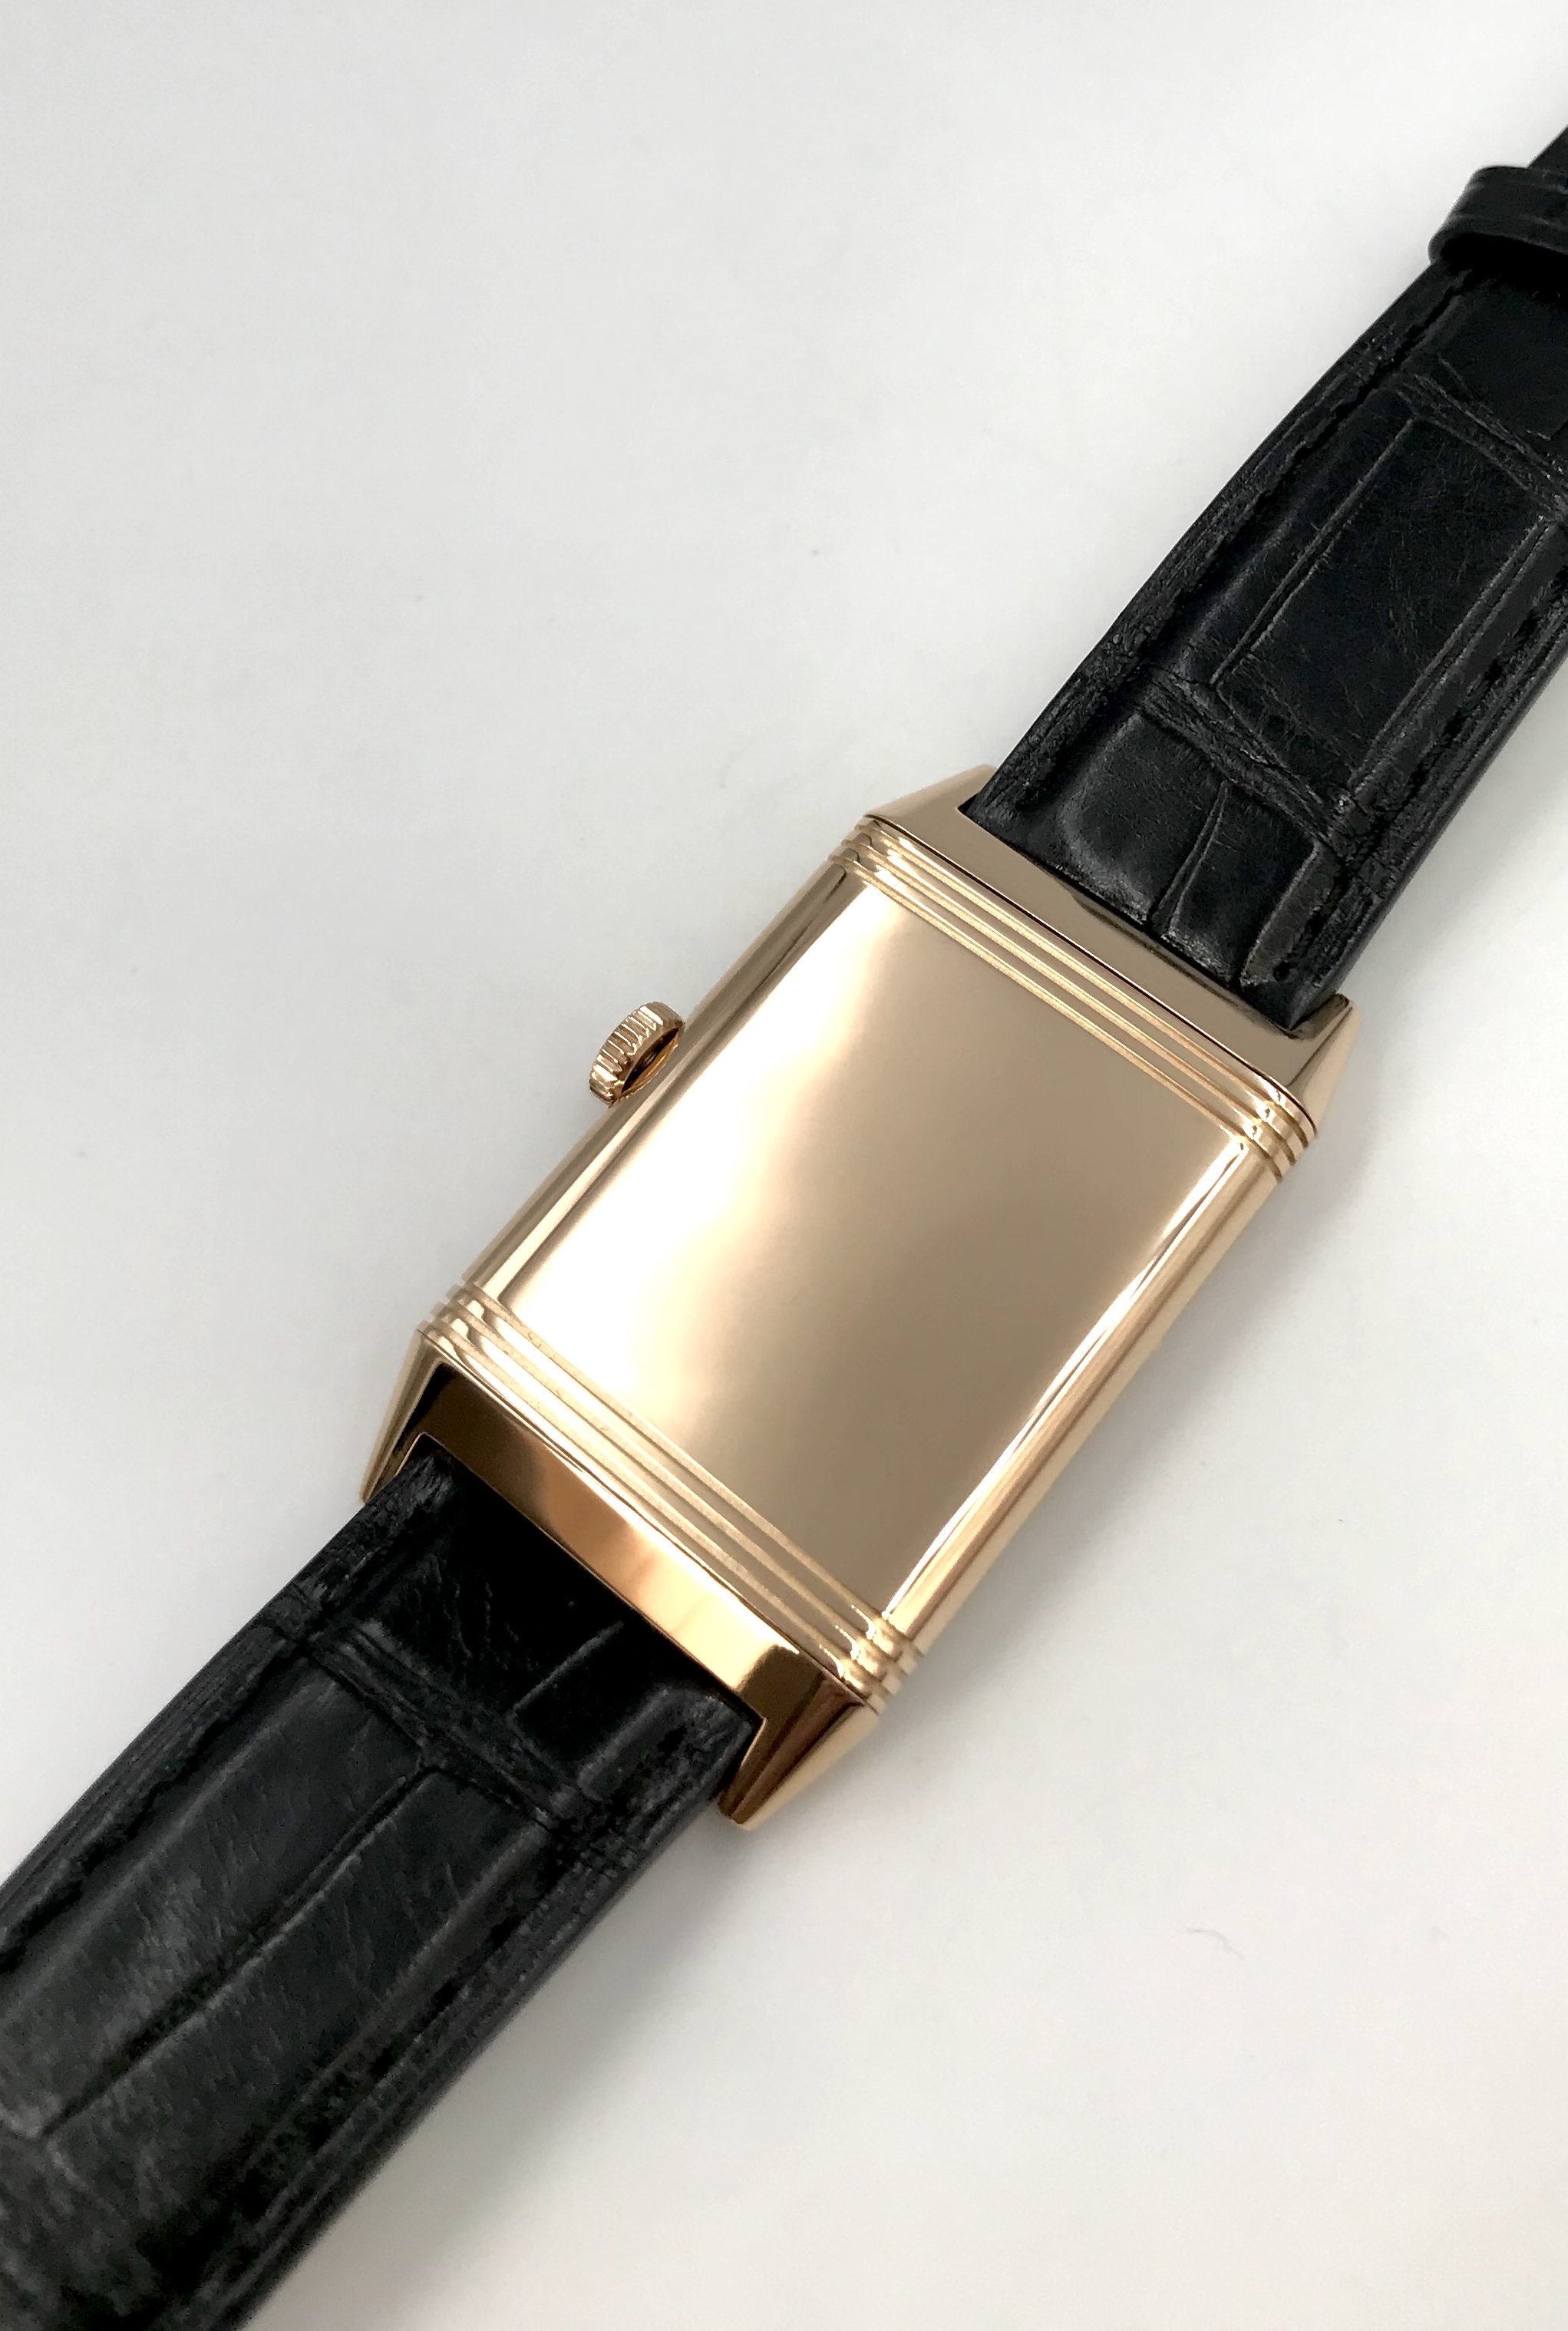 Jeager-LeCulture Reverso Ultra Thin